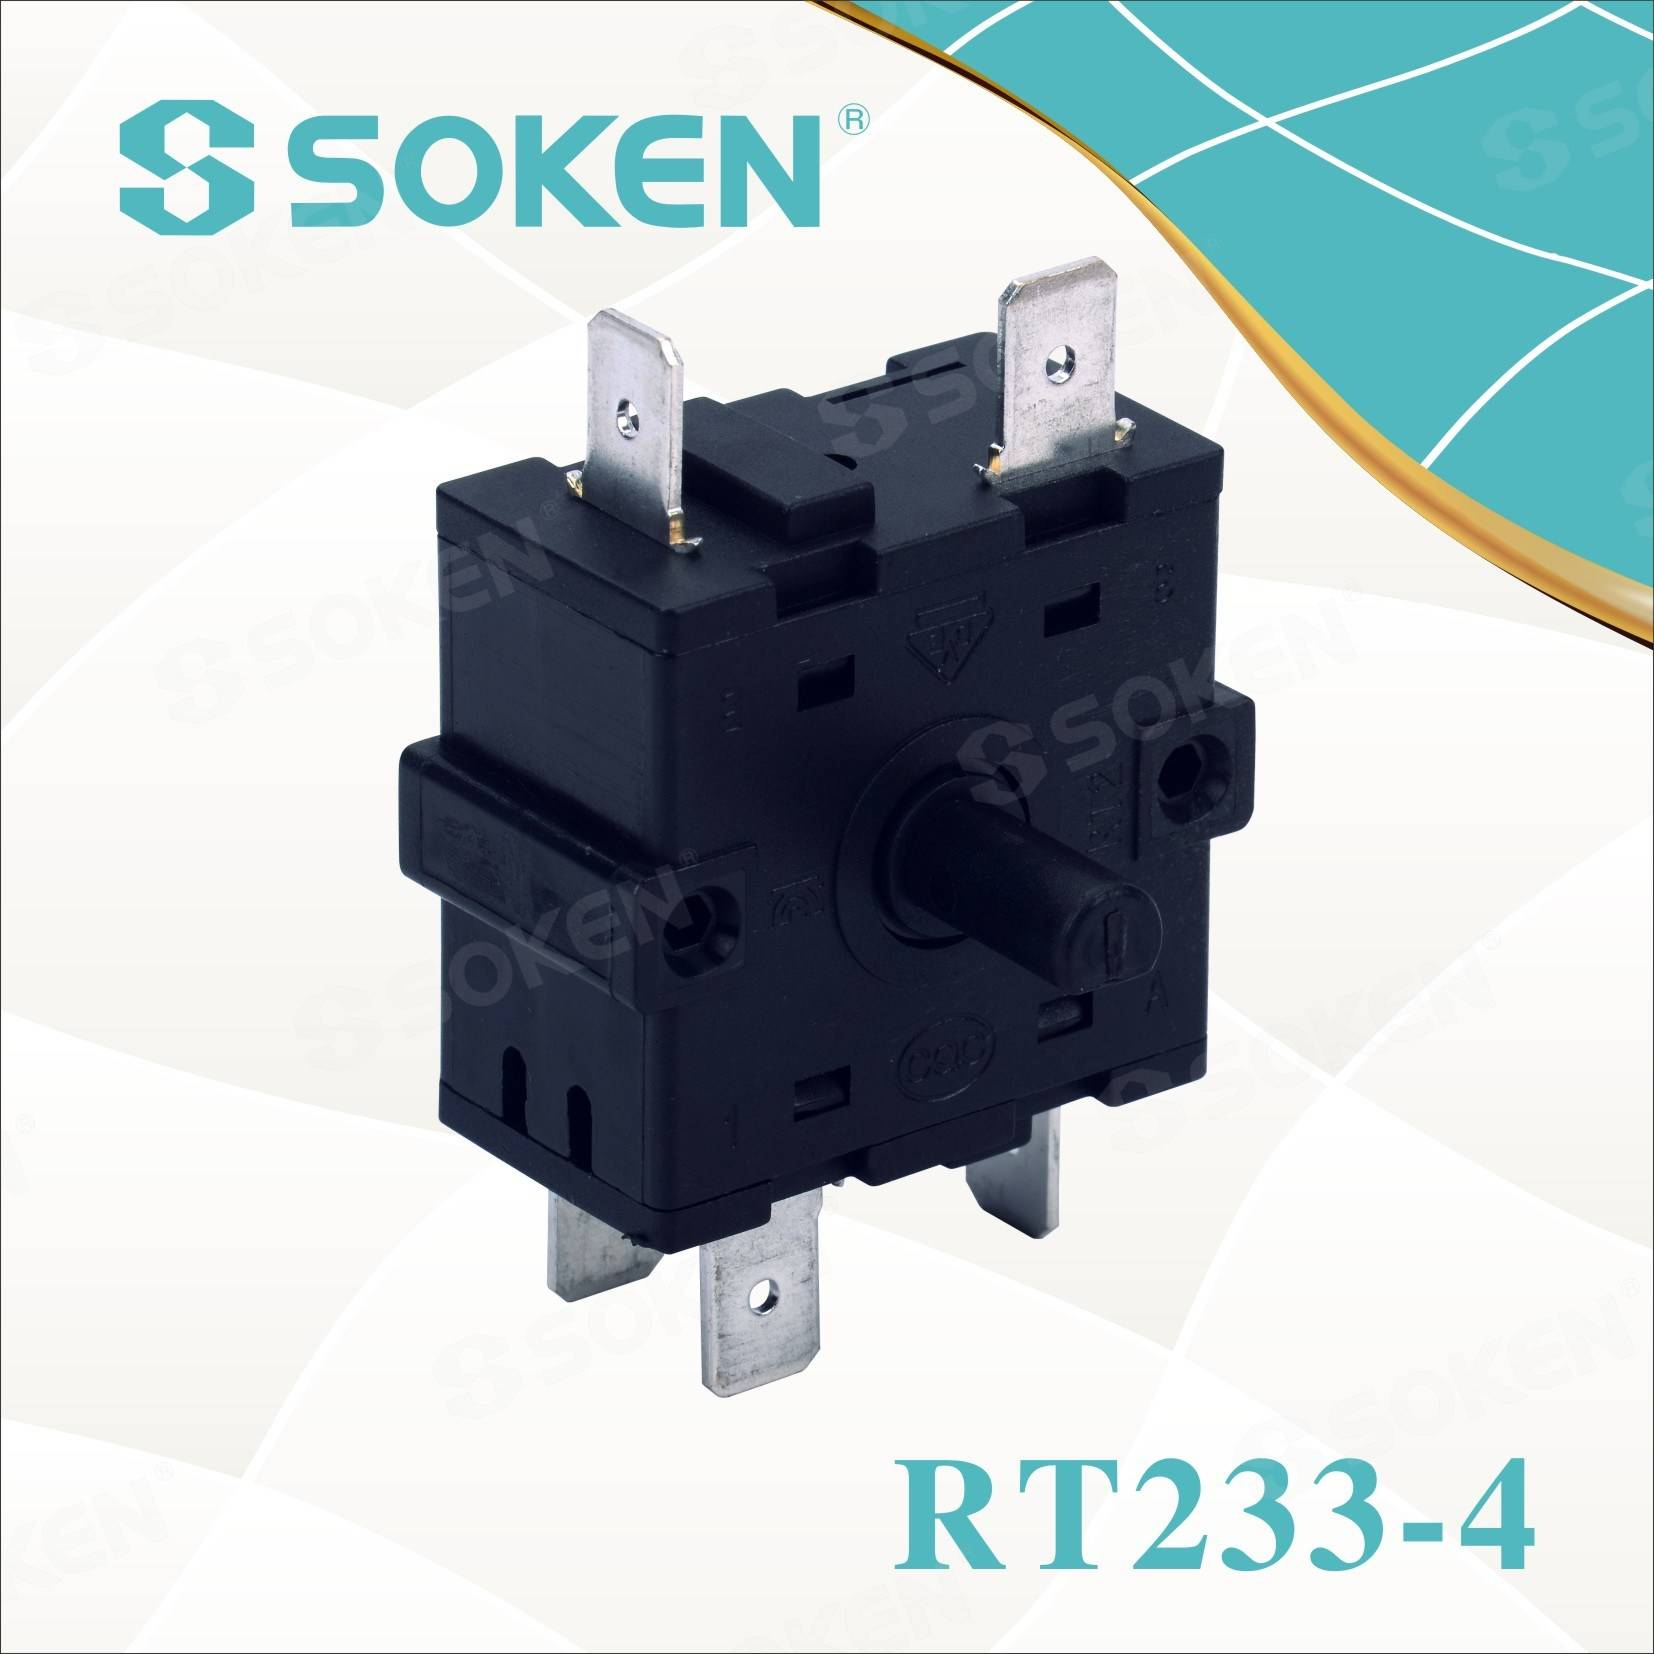 Reasonable price Aimpoint Heliport Light -